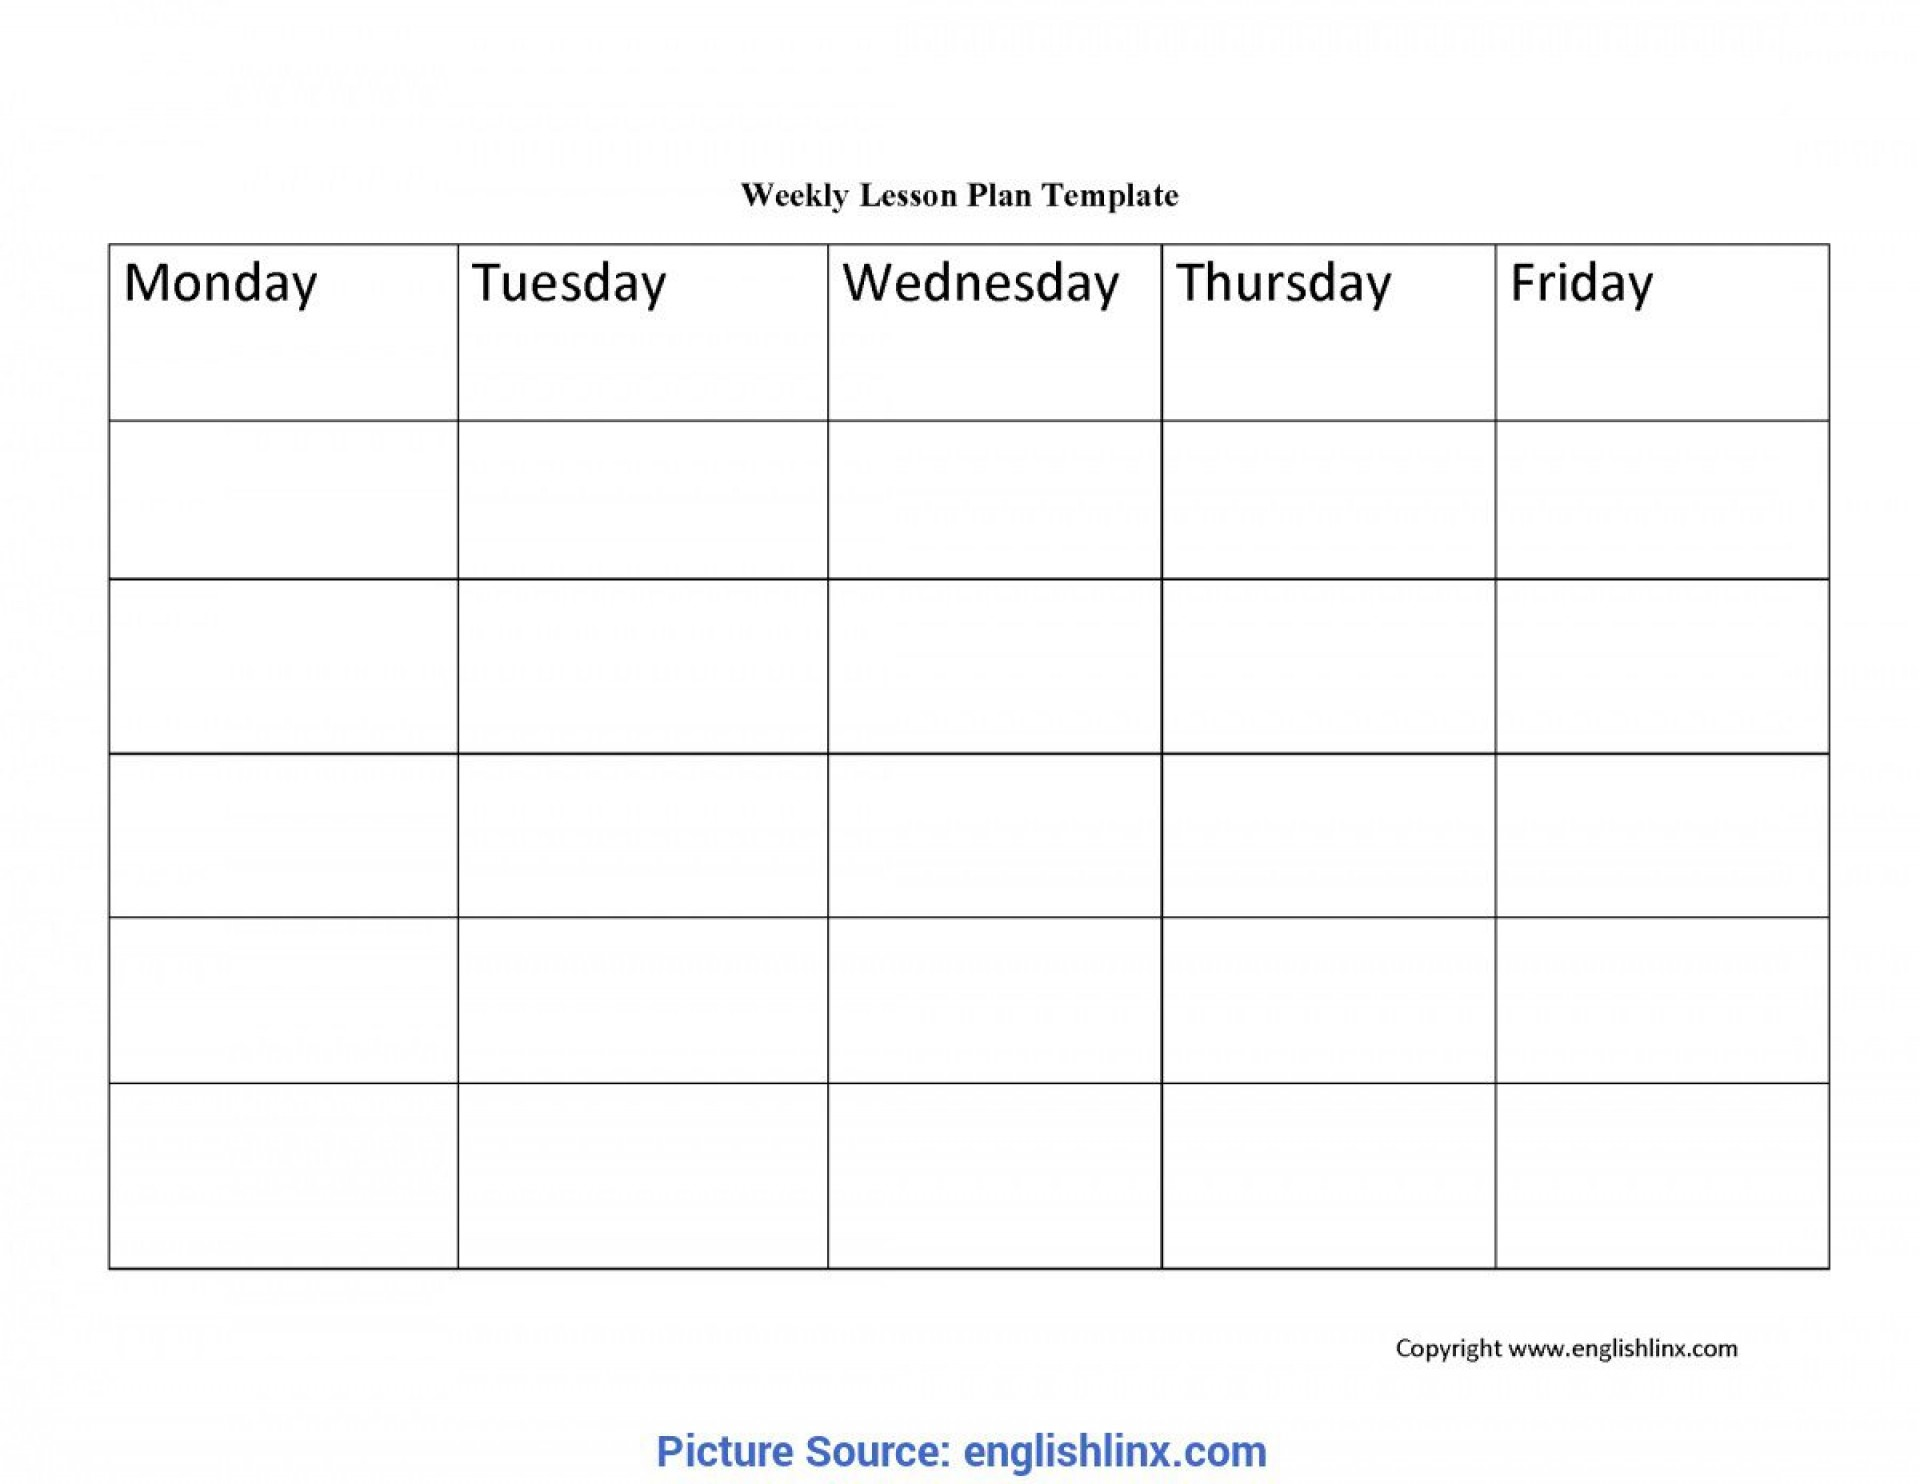 004 Dreaded Free Weekly Lesson Plan Template Image  Pdf Preschool Word For Elementary Teacher1920